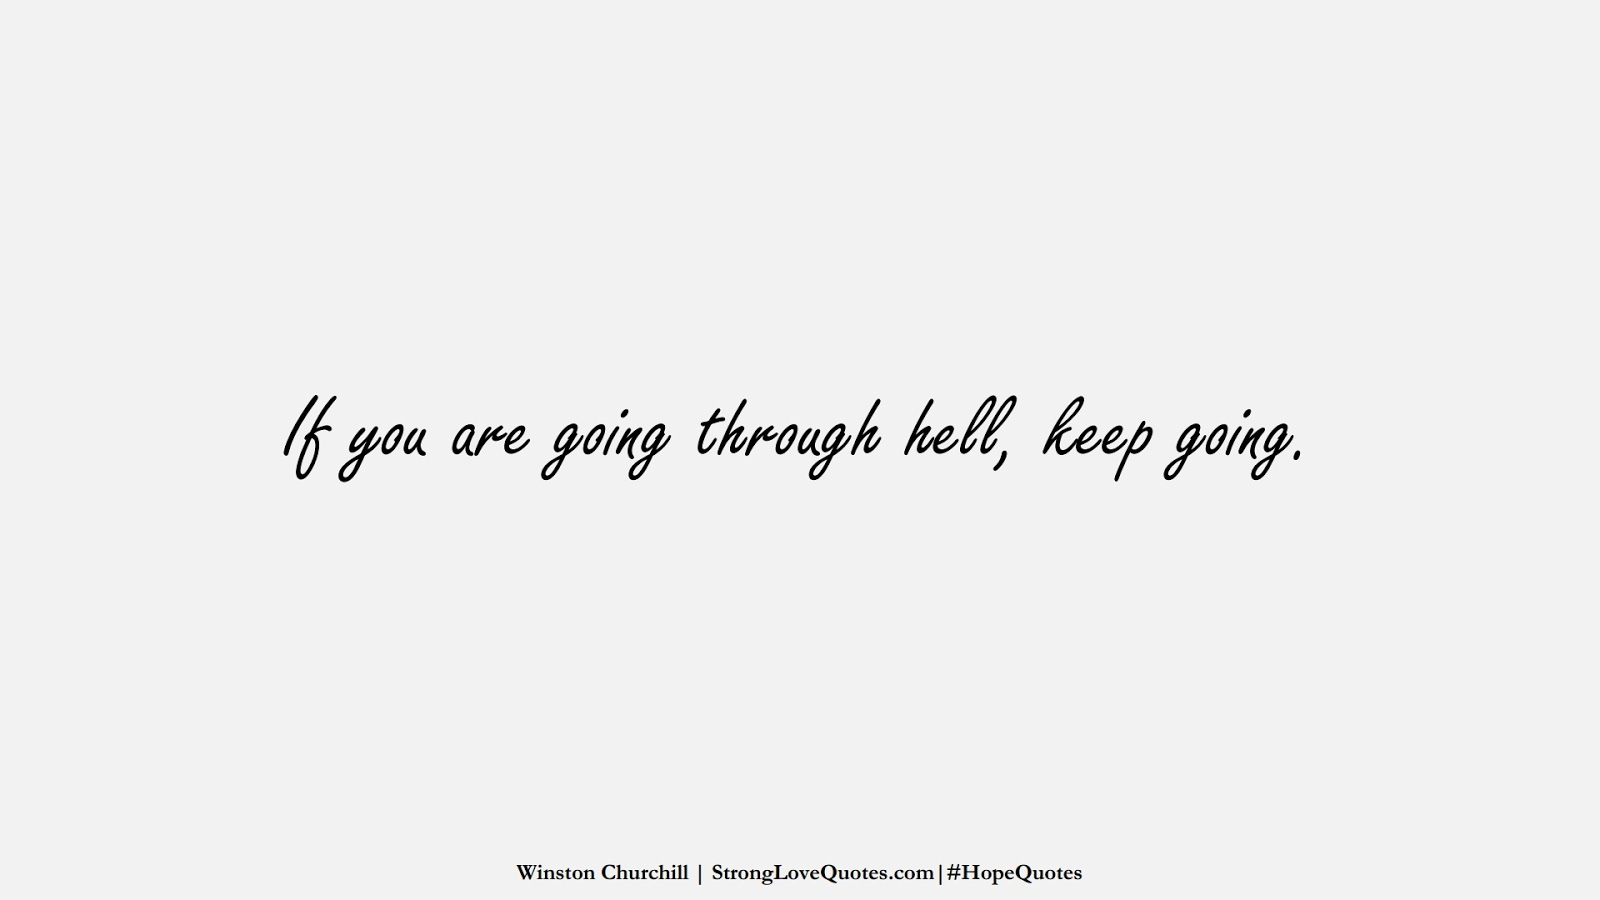 If you are going through hell, keep going. (Winston Churchill);  #HopeQuotes